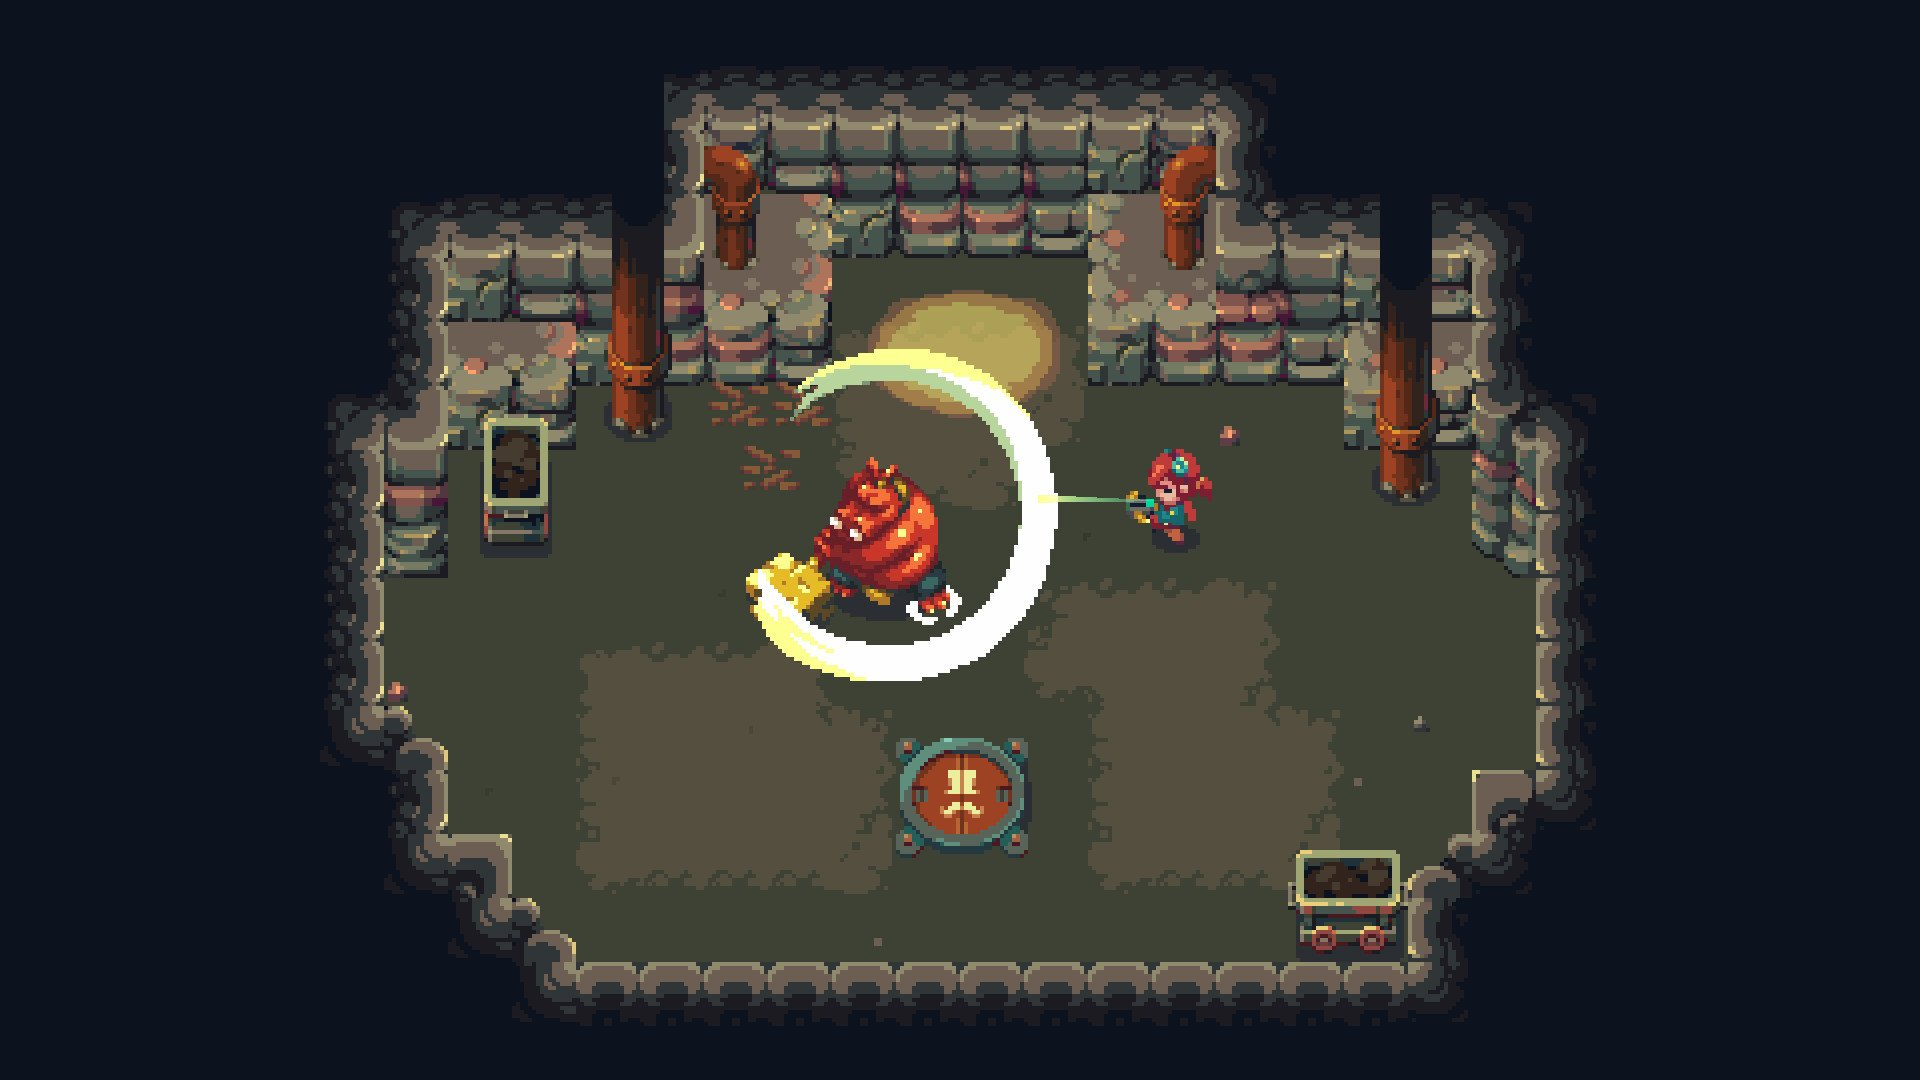 Sparklite is a cute roguelike that's best enjoyed on Switch screenshot